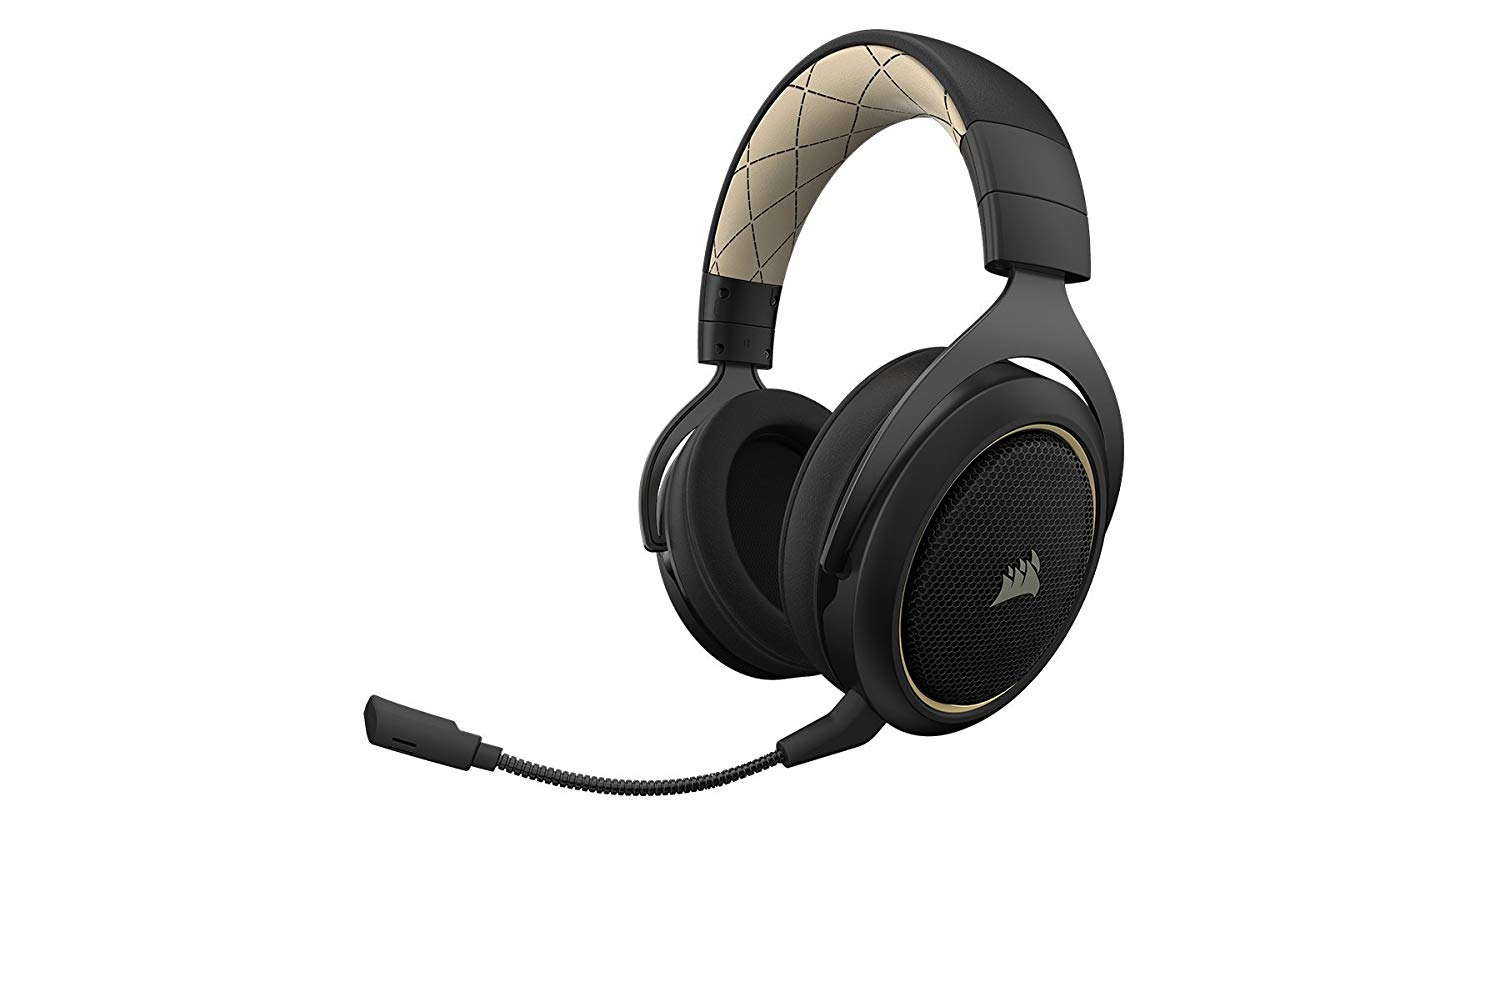 CORSAIR HS70 SE Wireless - 7.1 Surround Sound Gaming Headset - Discord Certified Headphones - Special Edition